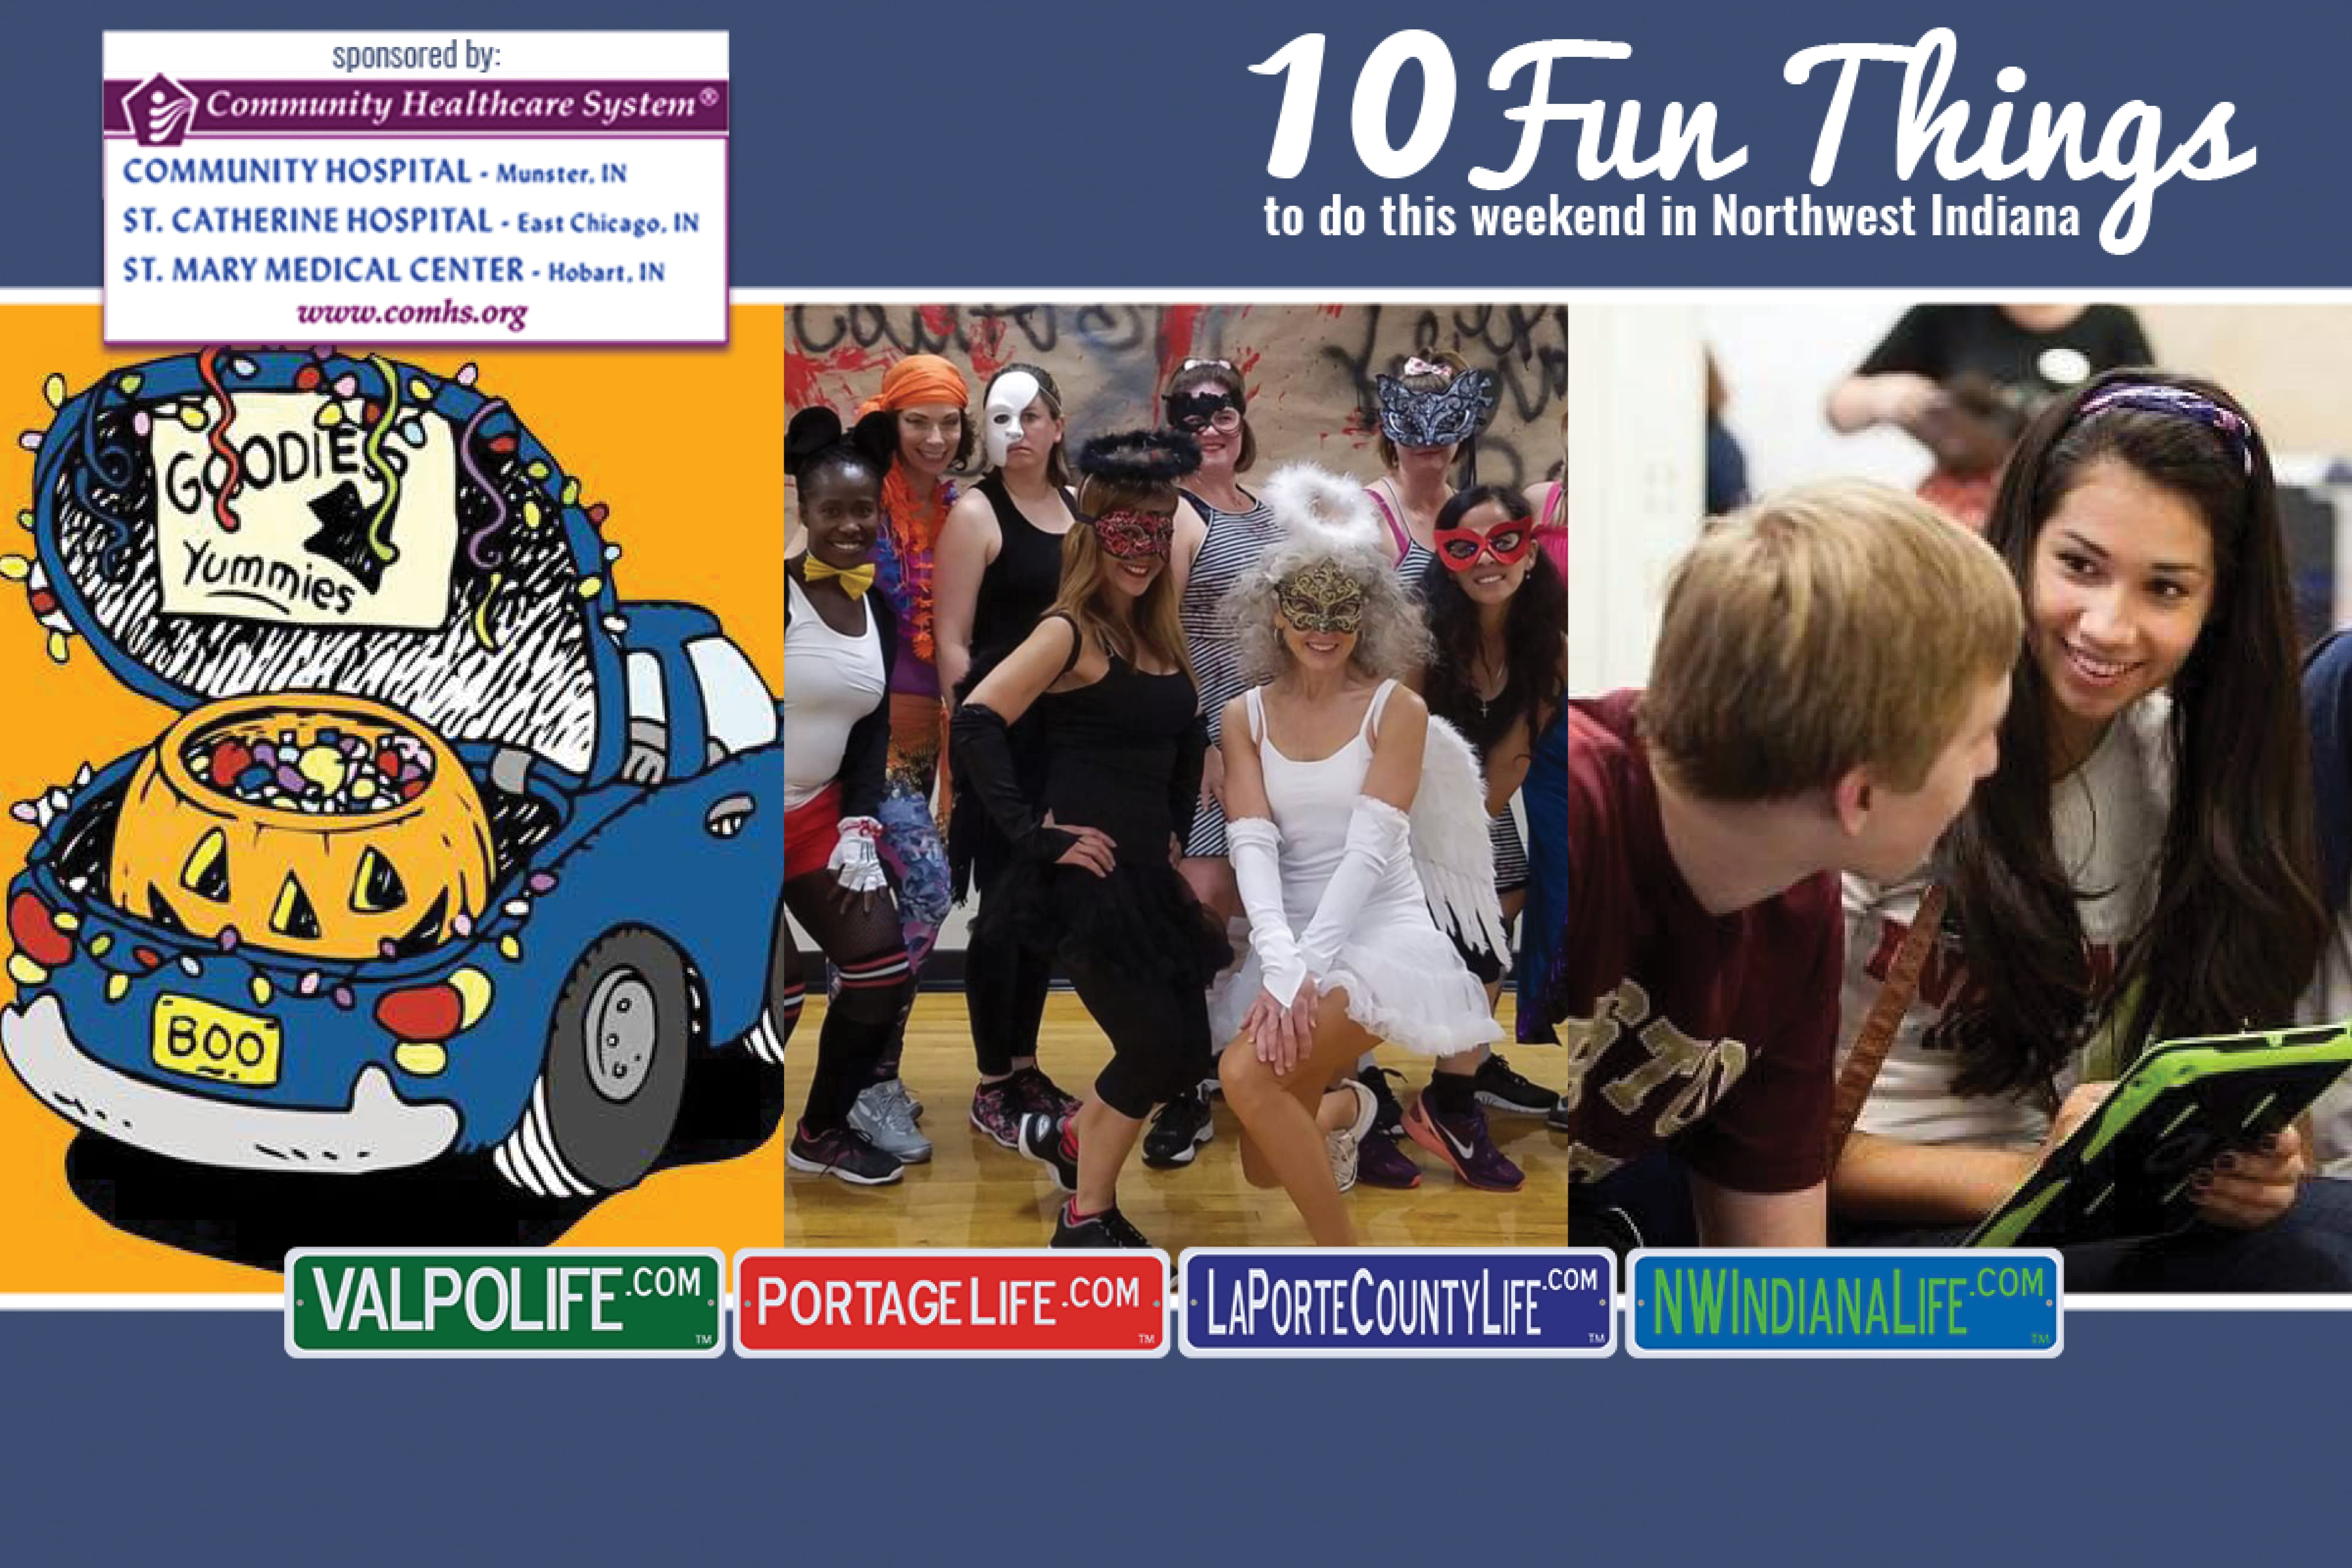 10 Fun Things to Do in NWI October 26 – October 28, 2018